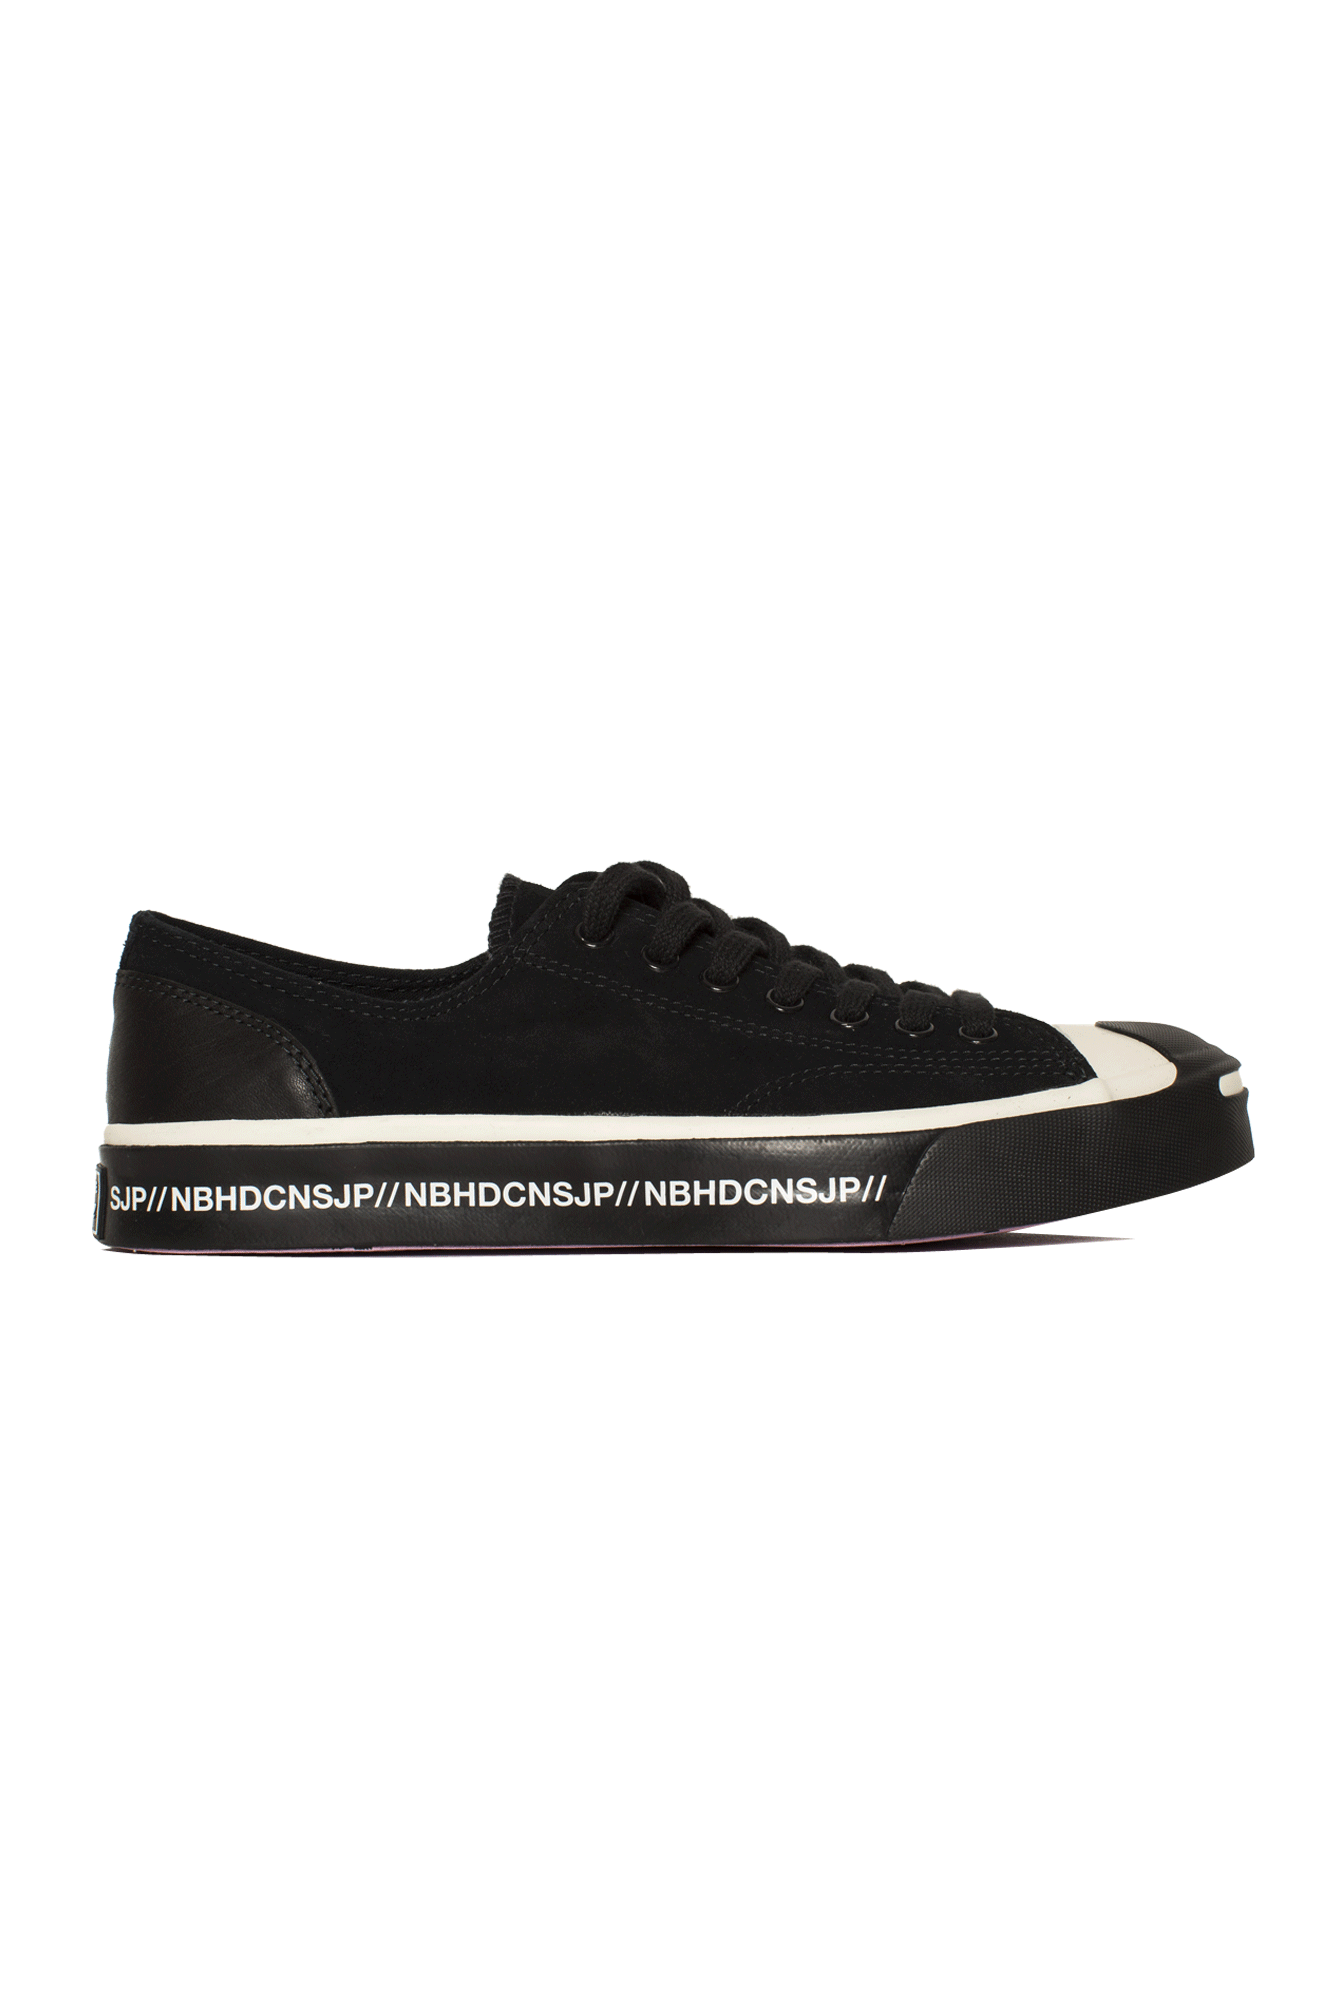 Converse x NEIGHBORHOOD Jack Purcell Black